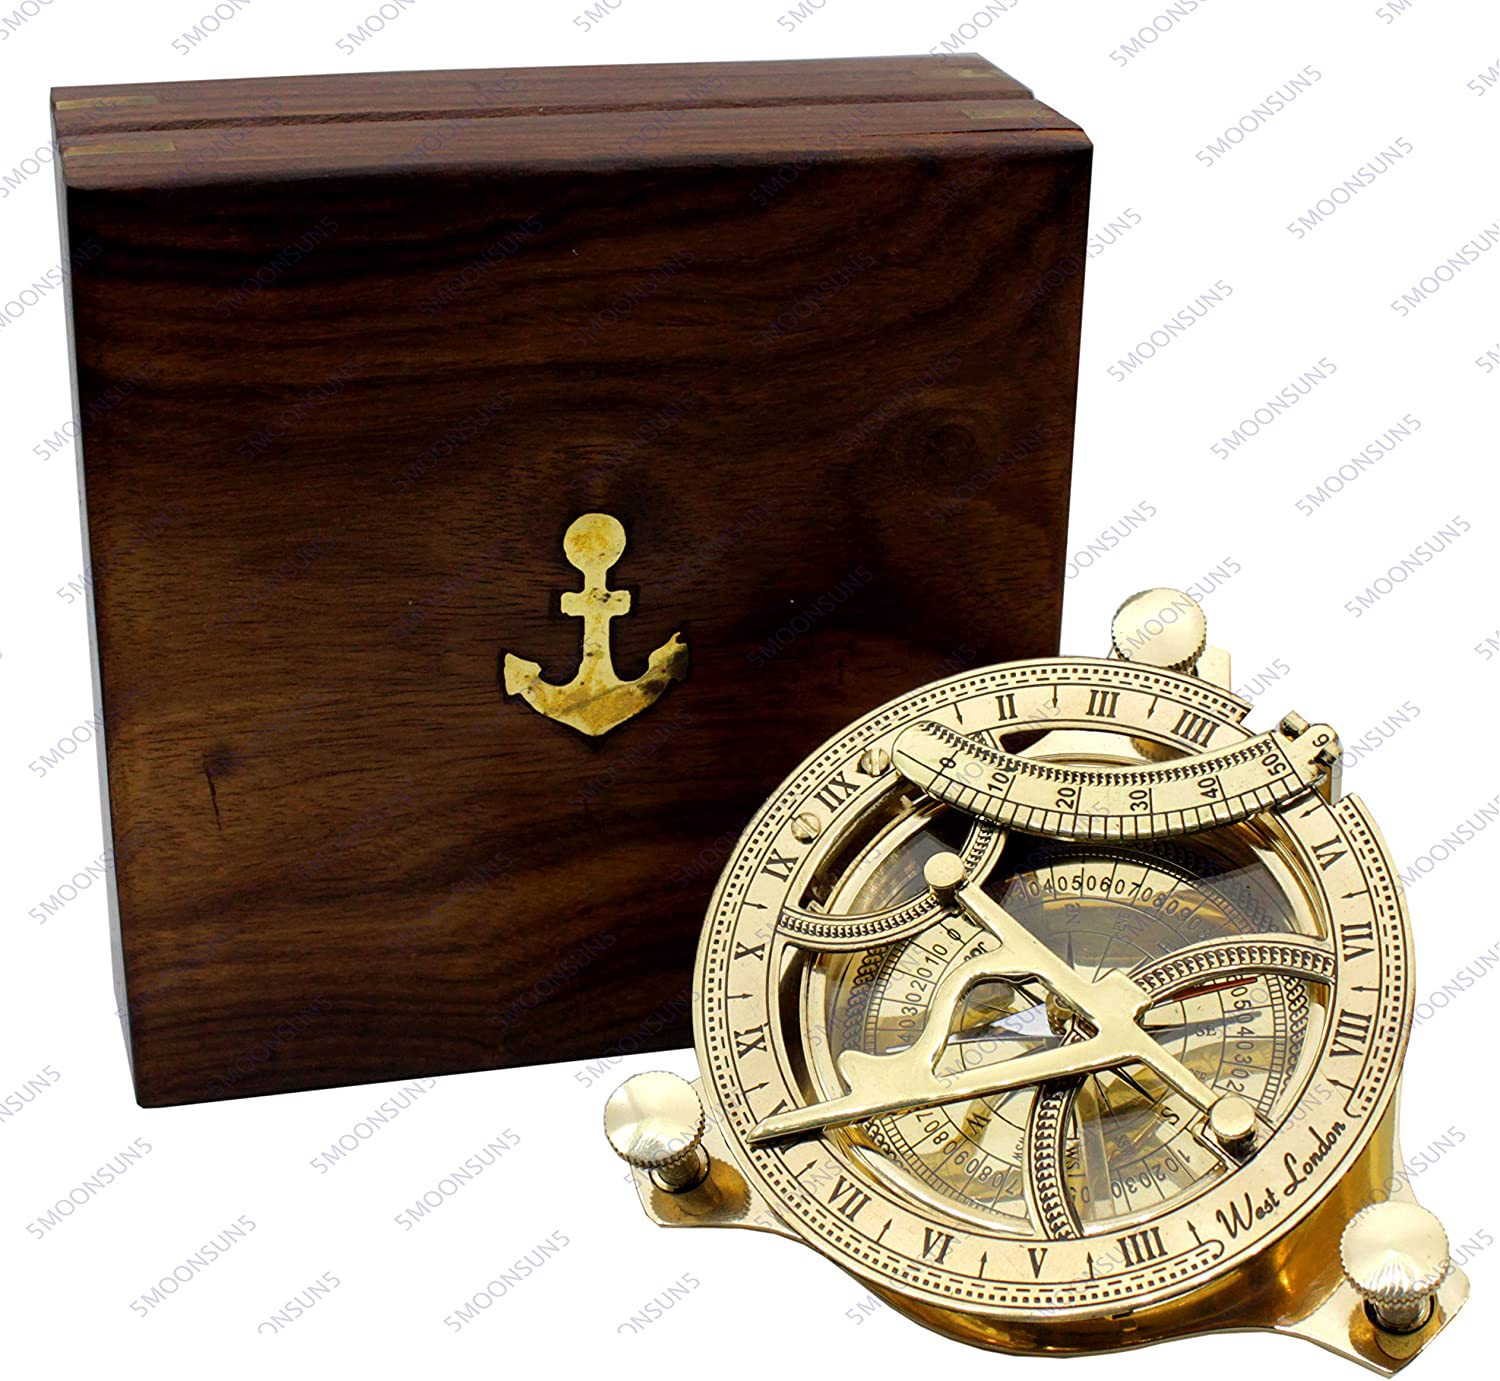 5MoonSun5's Nautical West London Sundial Compass 4'' inches With HandCrafted Rosewood Anchor Inlaid Case Maritime Decor Gifts steampunk collectibles